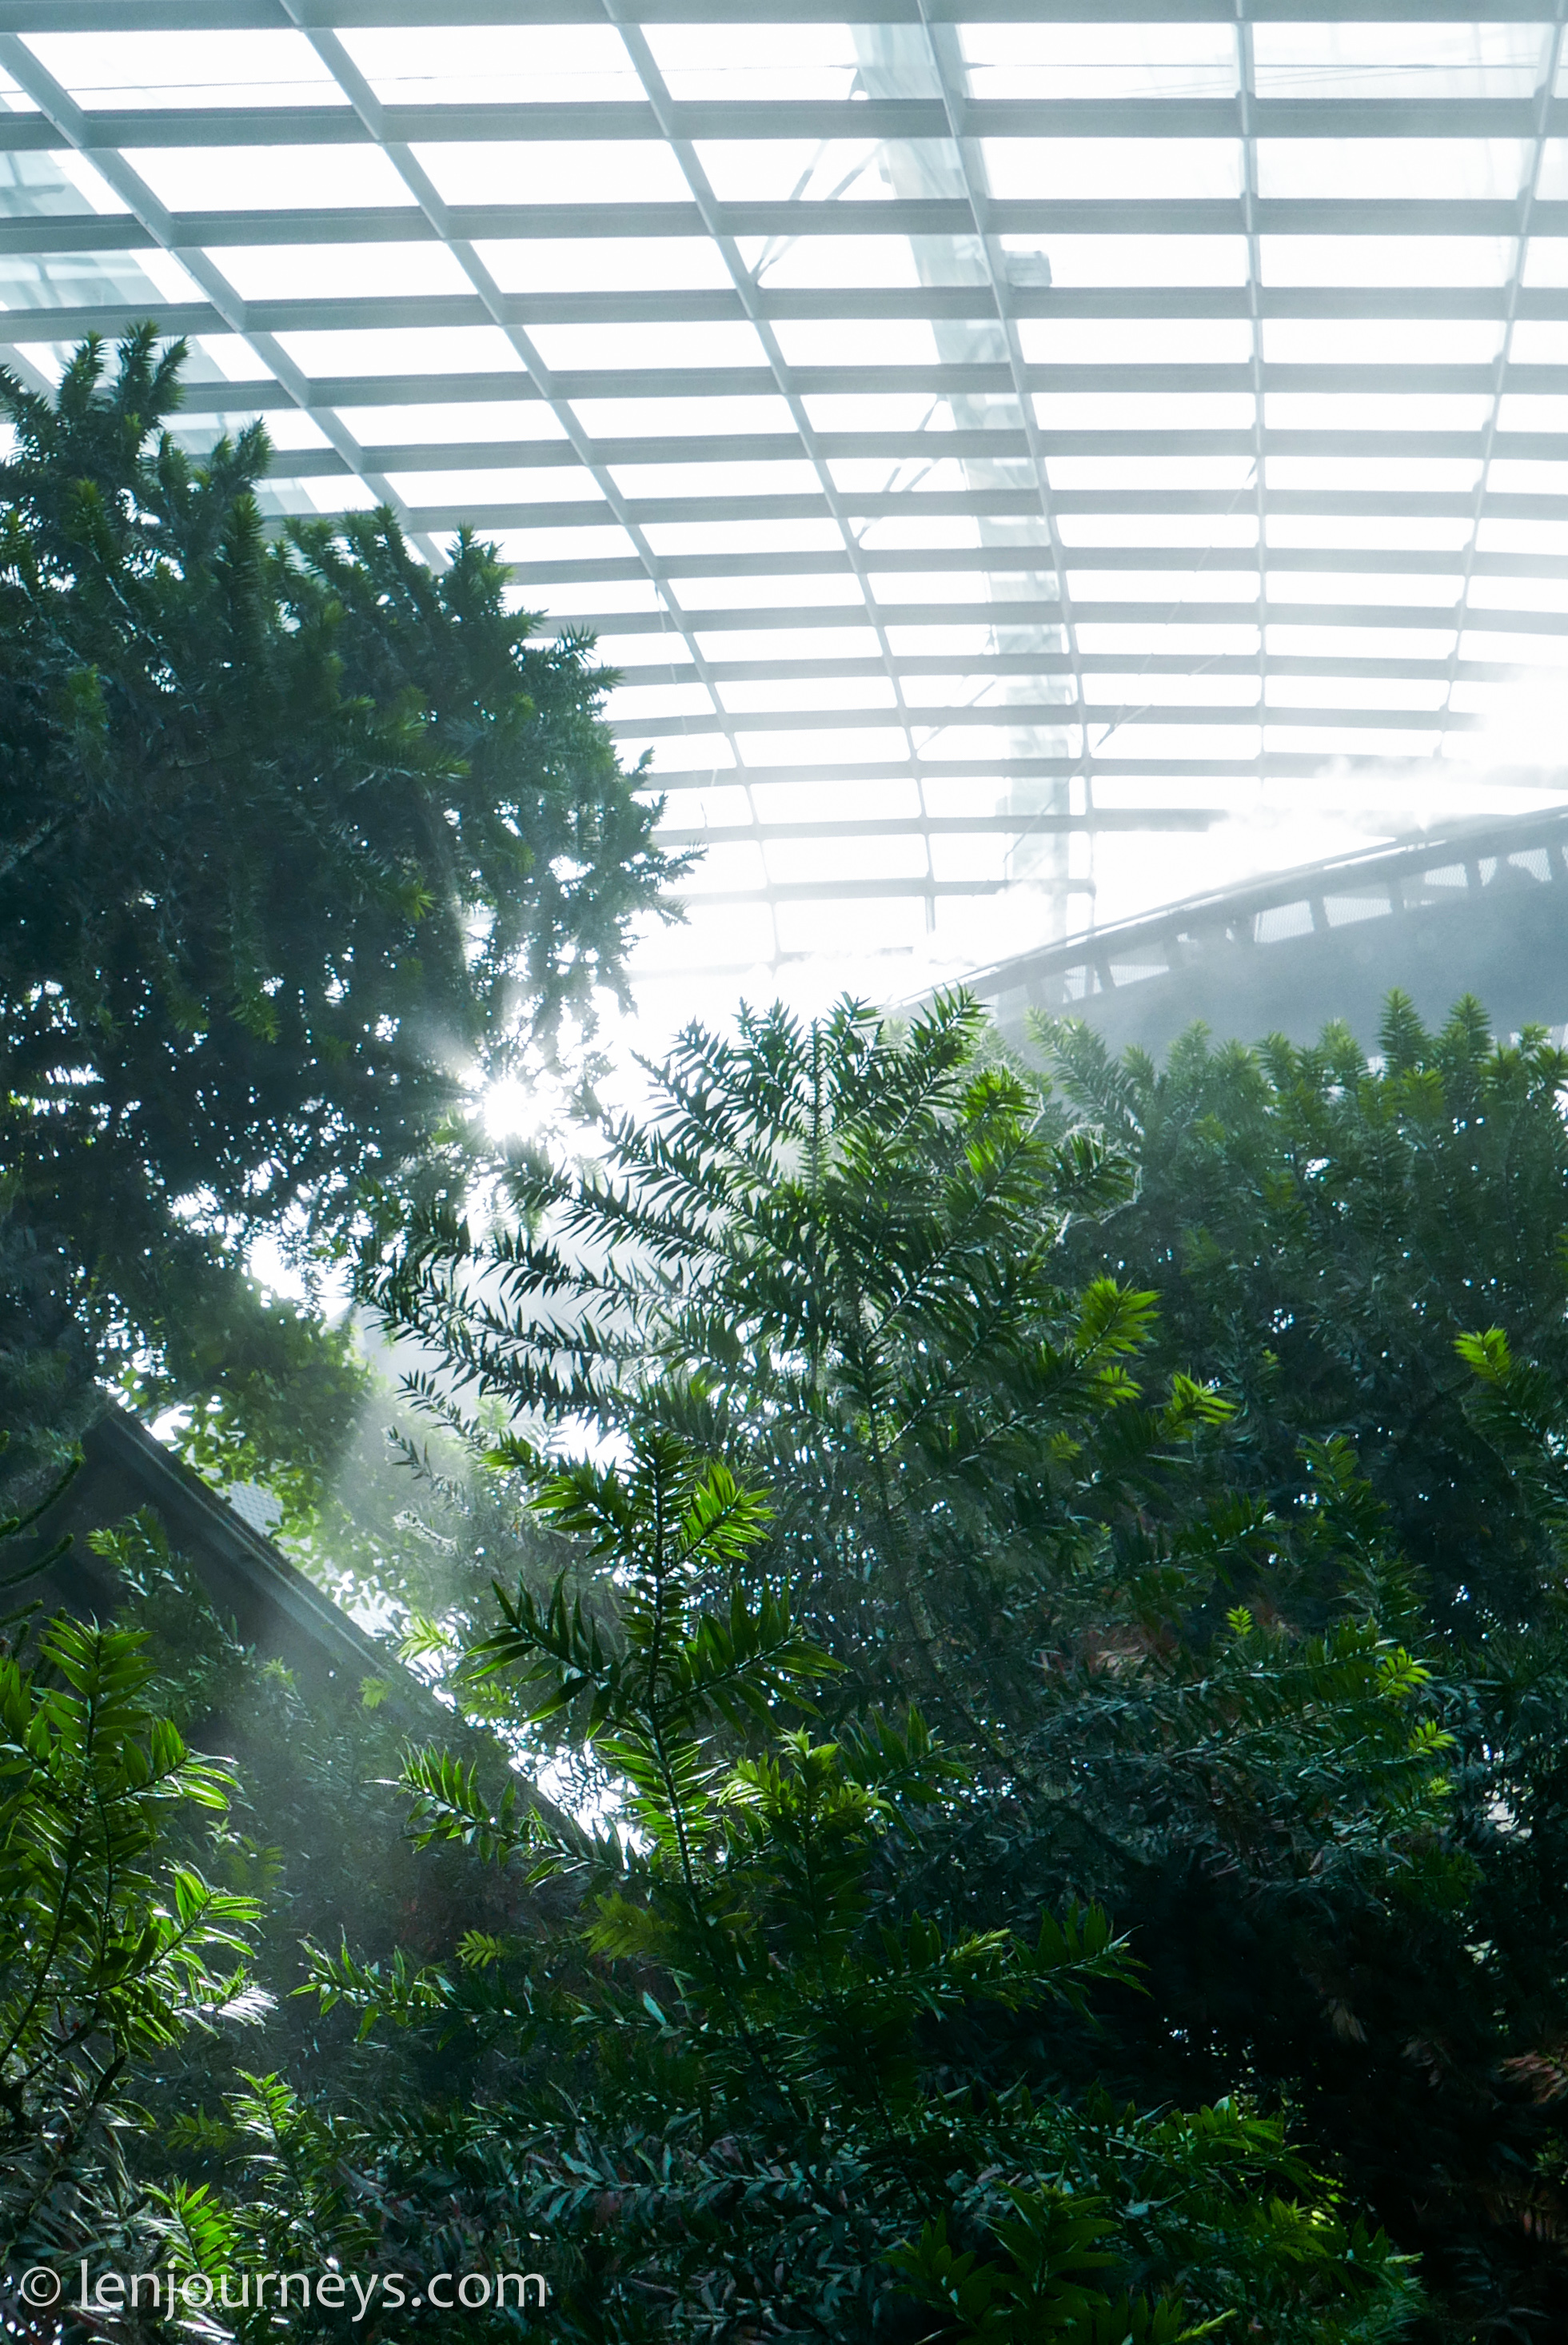 Cloud Forest at Gardens by the Bay, a mist-filled conservatory